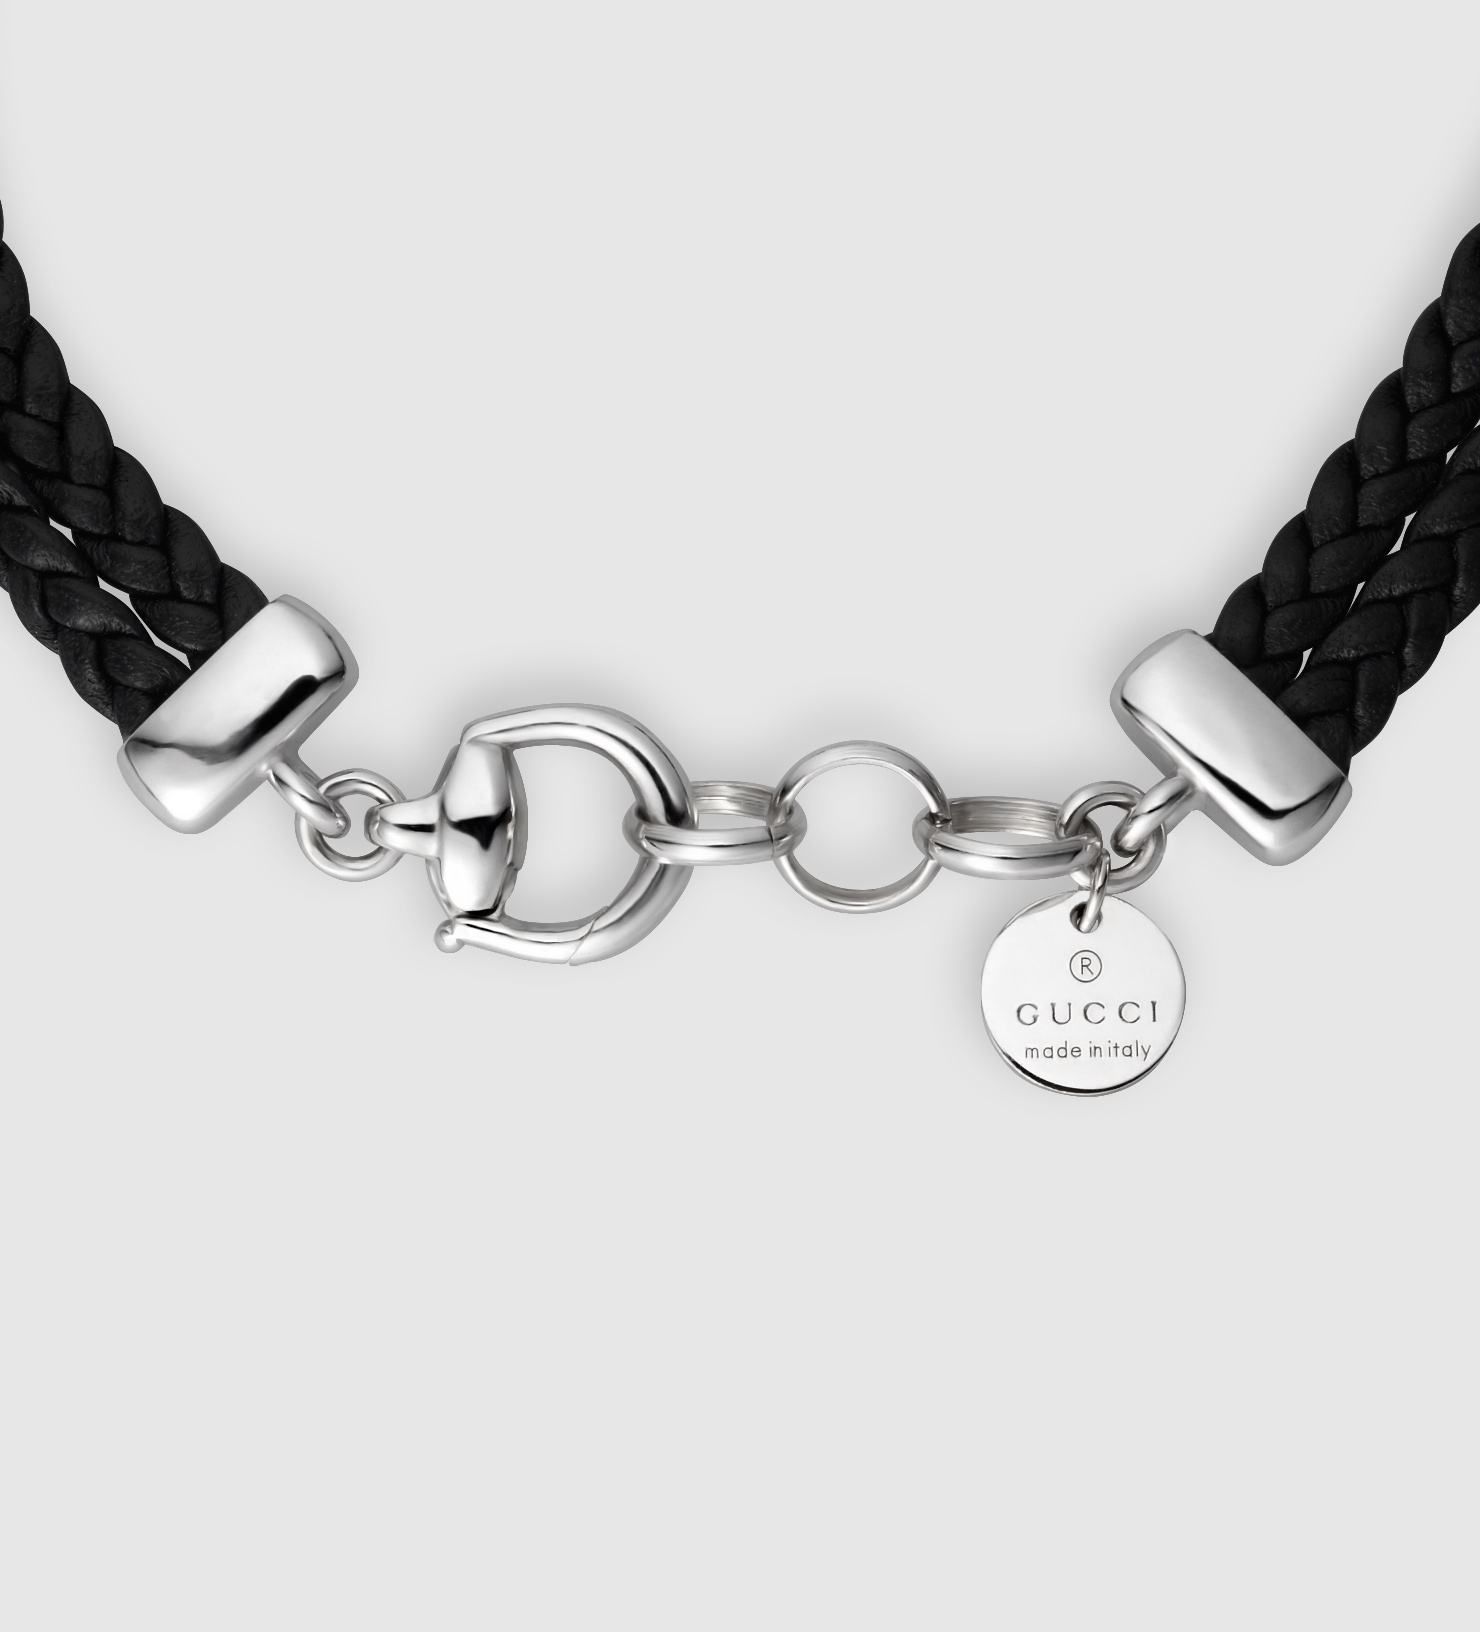 419e4329e Gucci Black Leather Bracelet With Horsebit in Black - Lyst